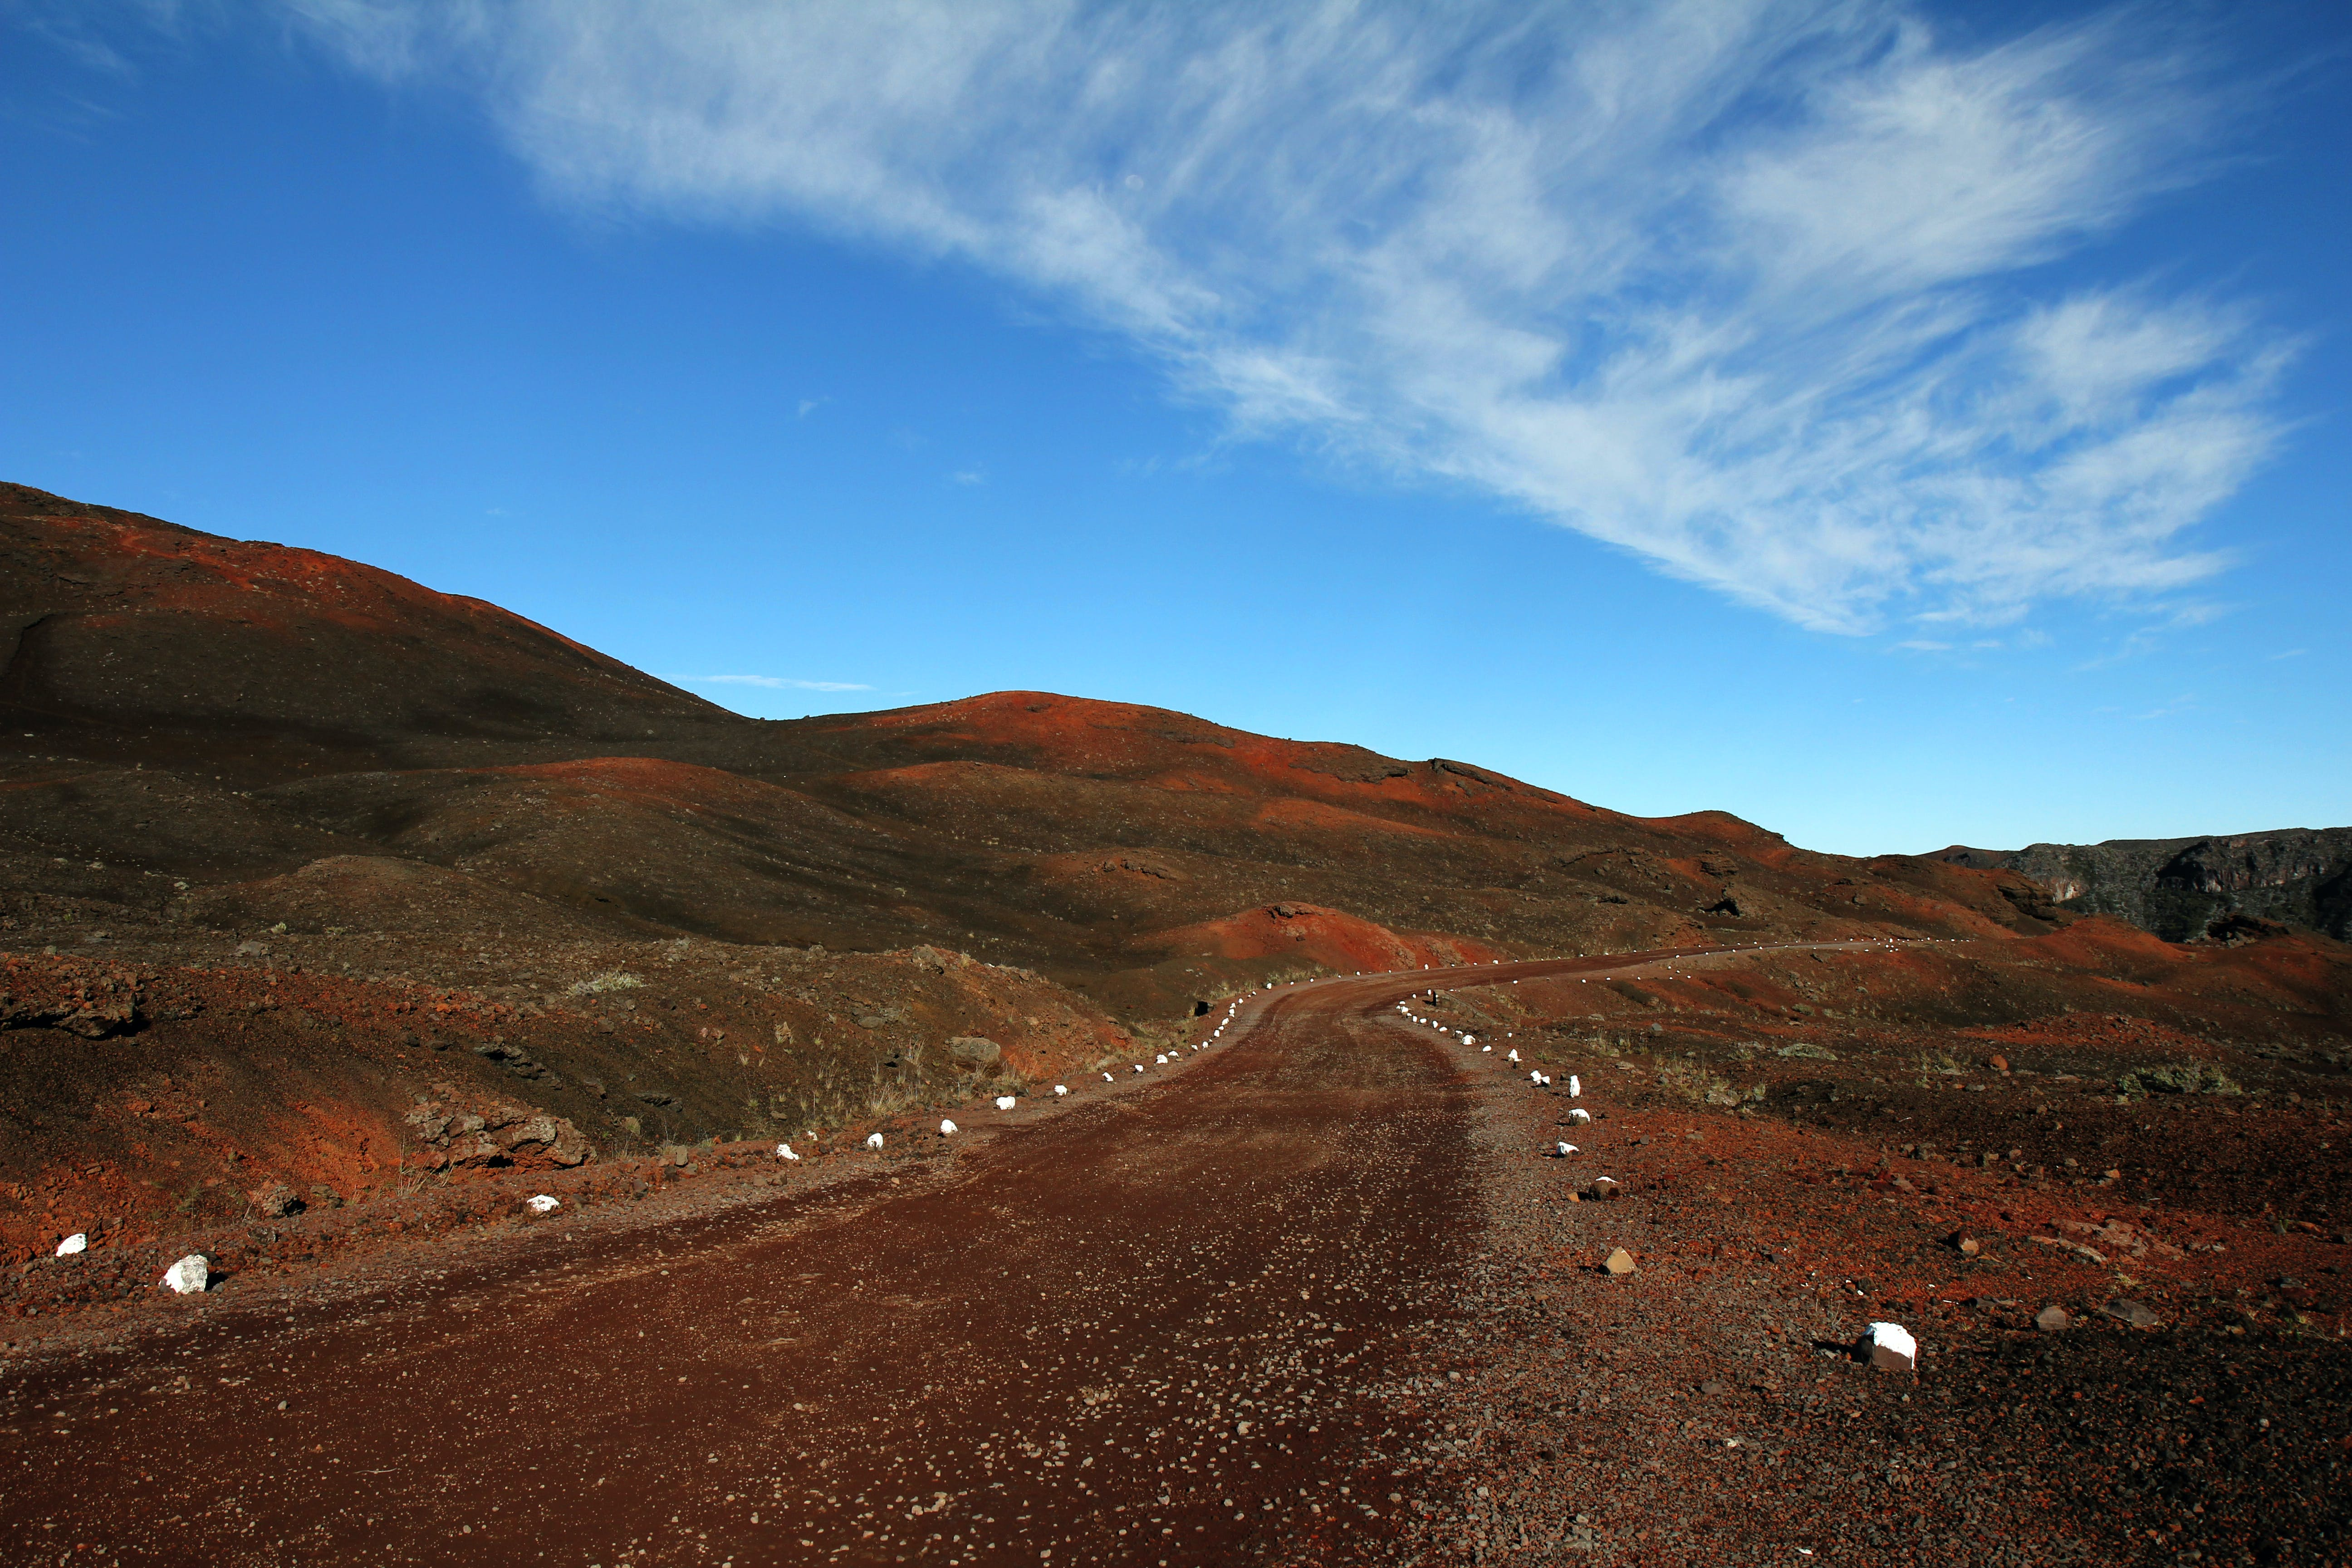 Brown Road Beside Hills over White Clouds and Blue Sky during Daytime